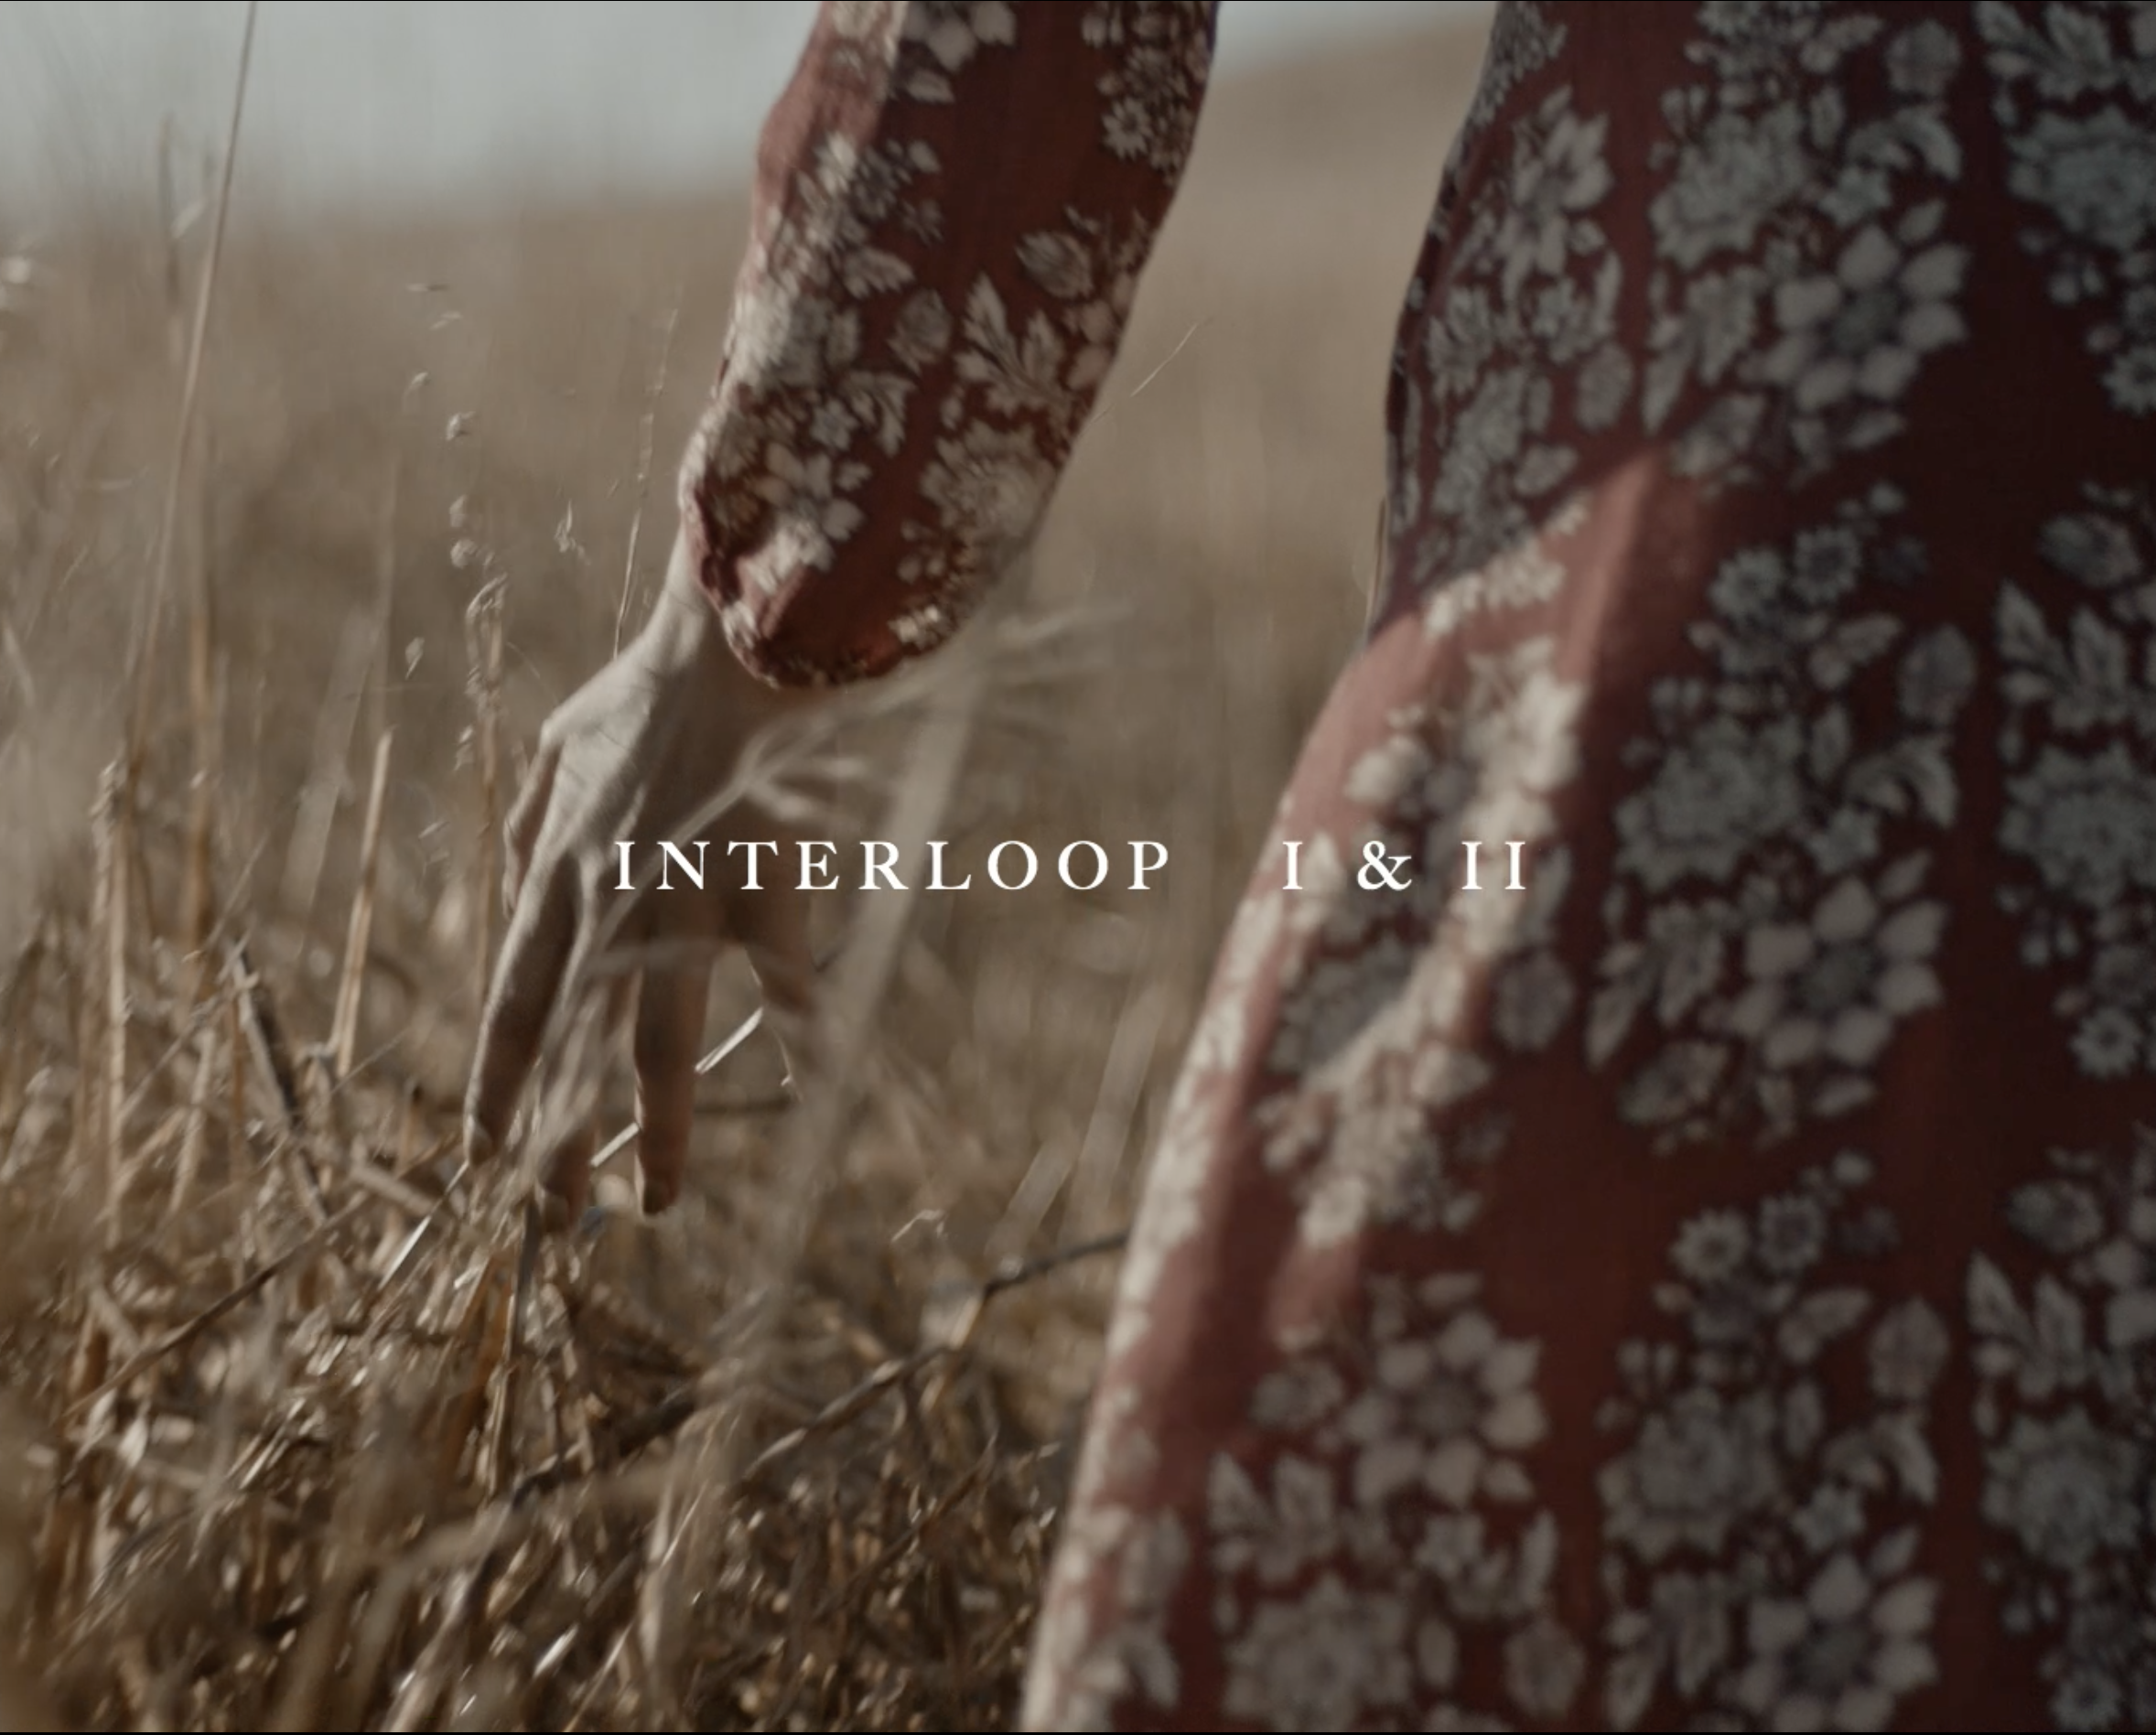 Interloop I & II - Inspiration, ideation, iteration, illustration. And Imposition.A dance film about the creative process shot by my talented cinematographer friend, Neeraj Jain. Music by Shilpa Ananth.